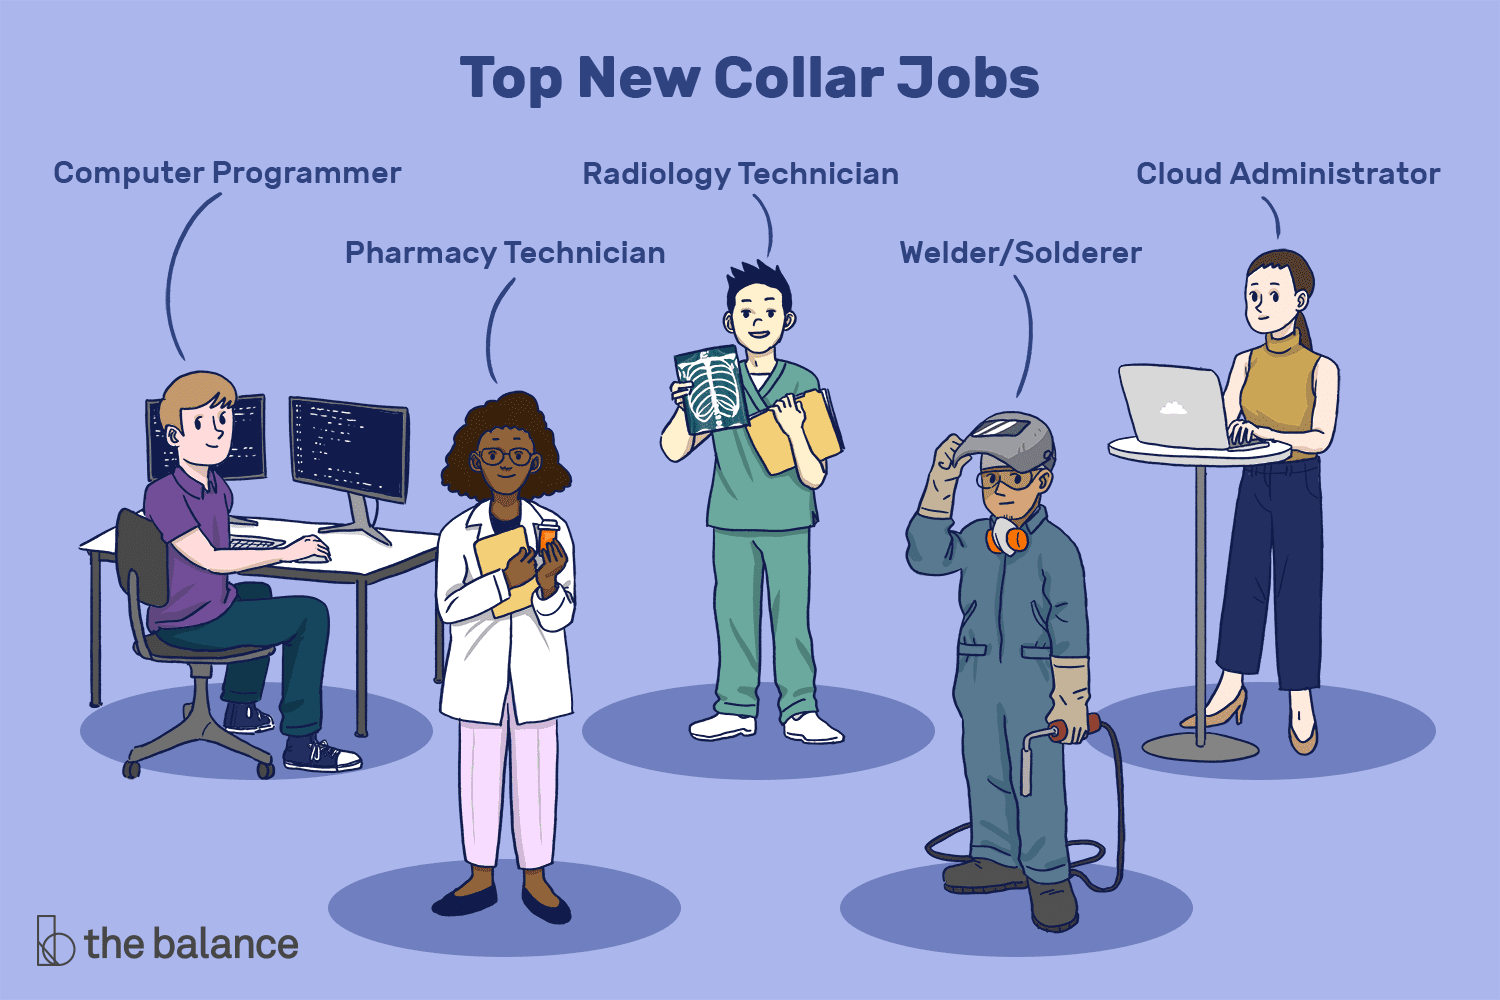 10 High-Paying Jobs You Can Get Without a College Degree